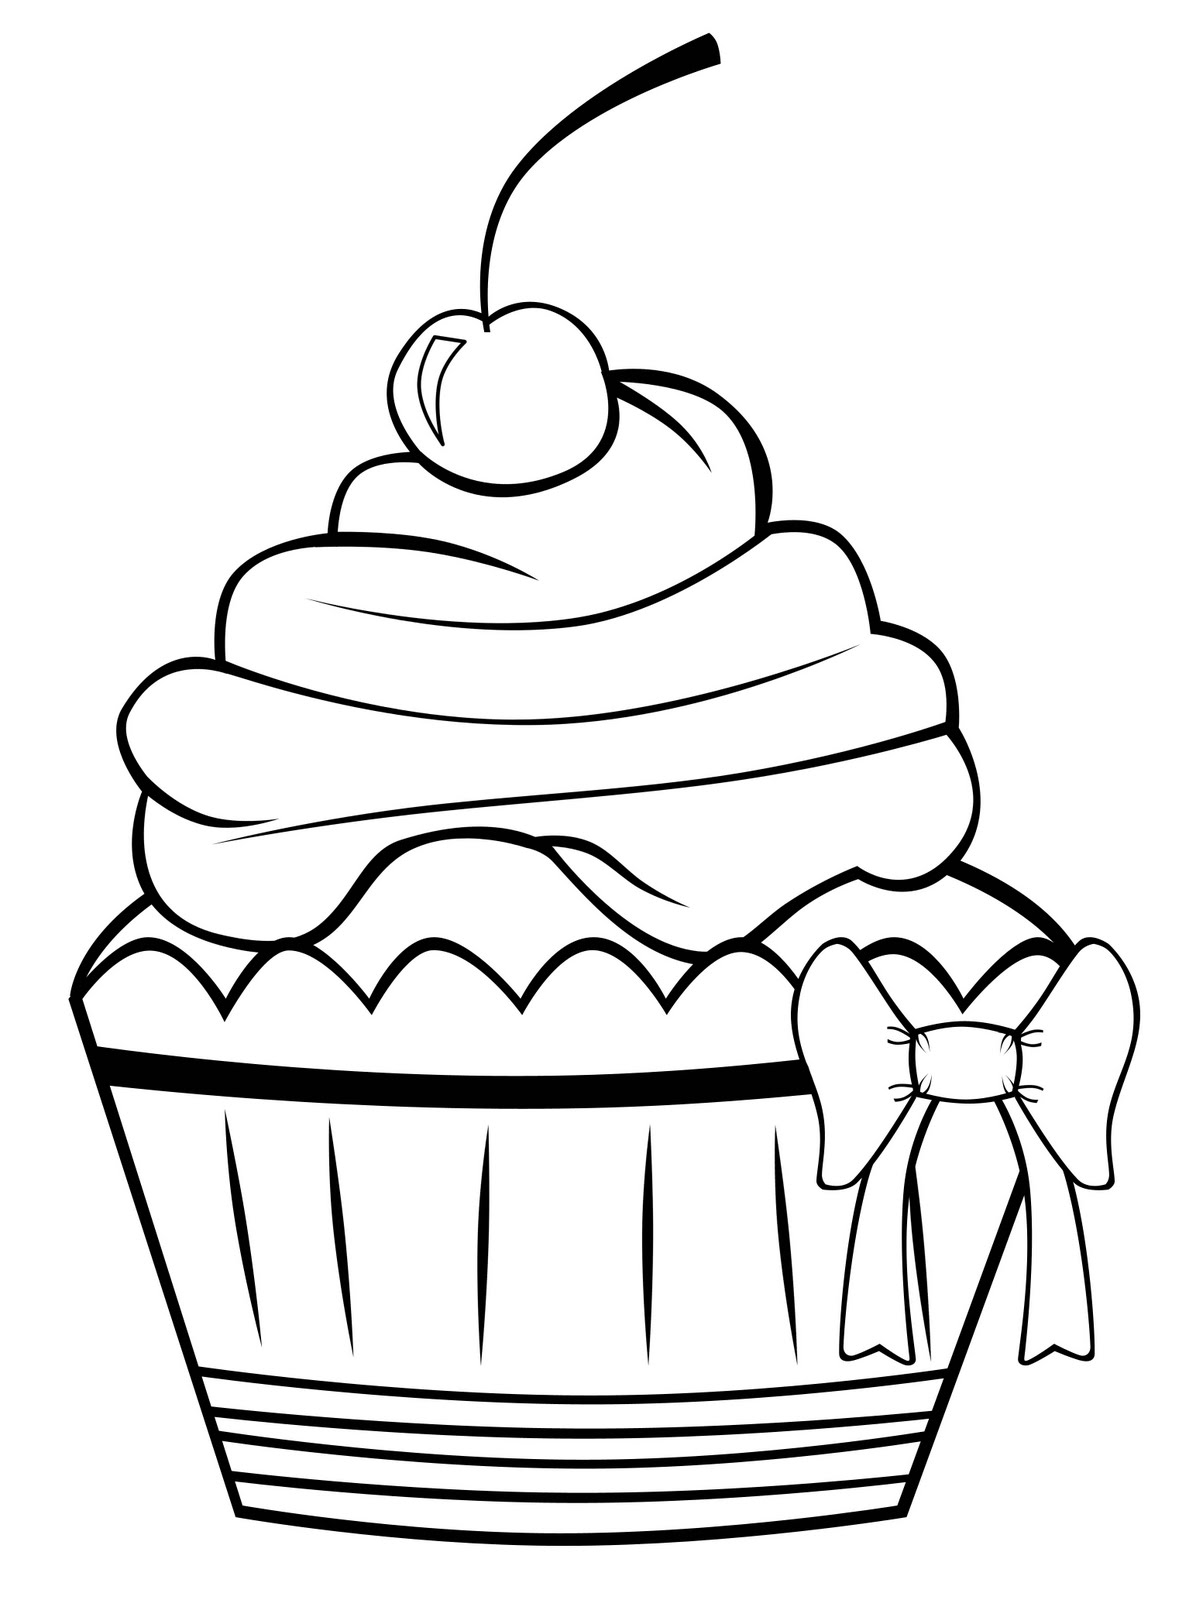 cupcakes coloring pages free printable cupcake coloring pages for kids pages coloring cupcakes